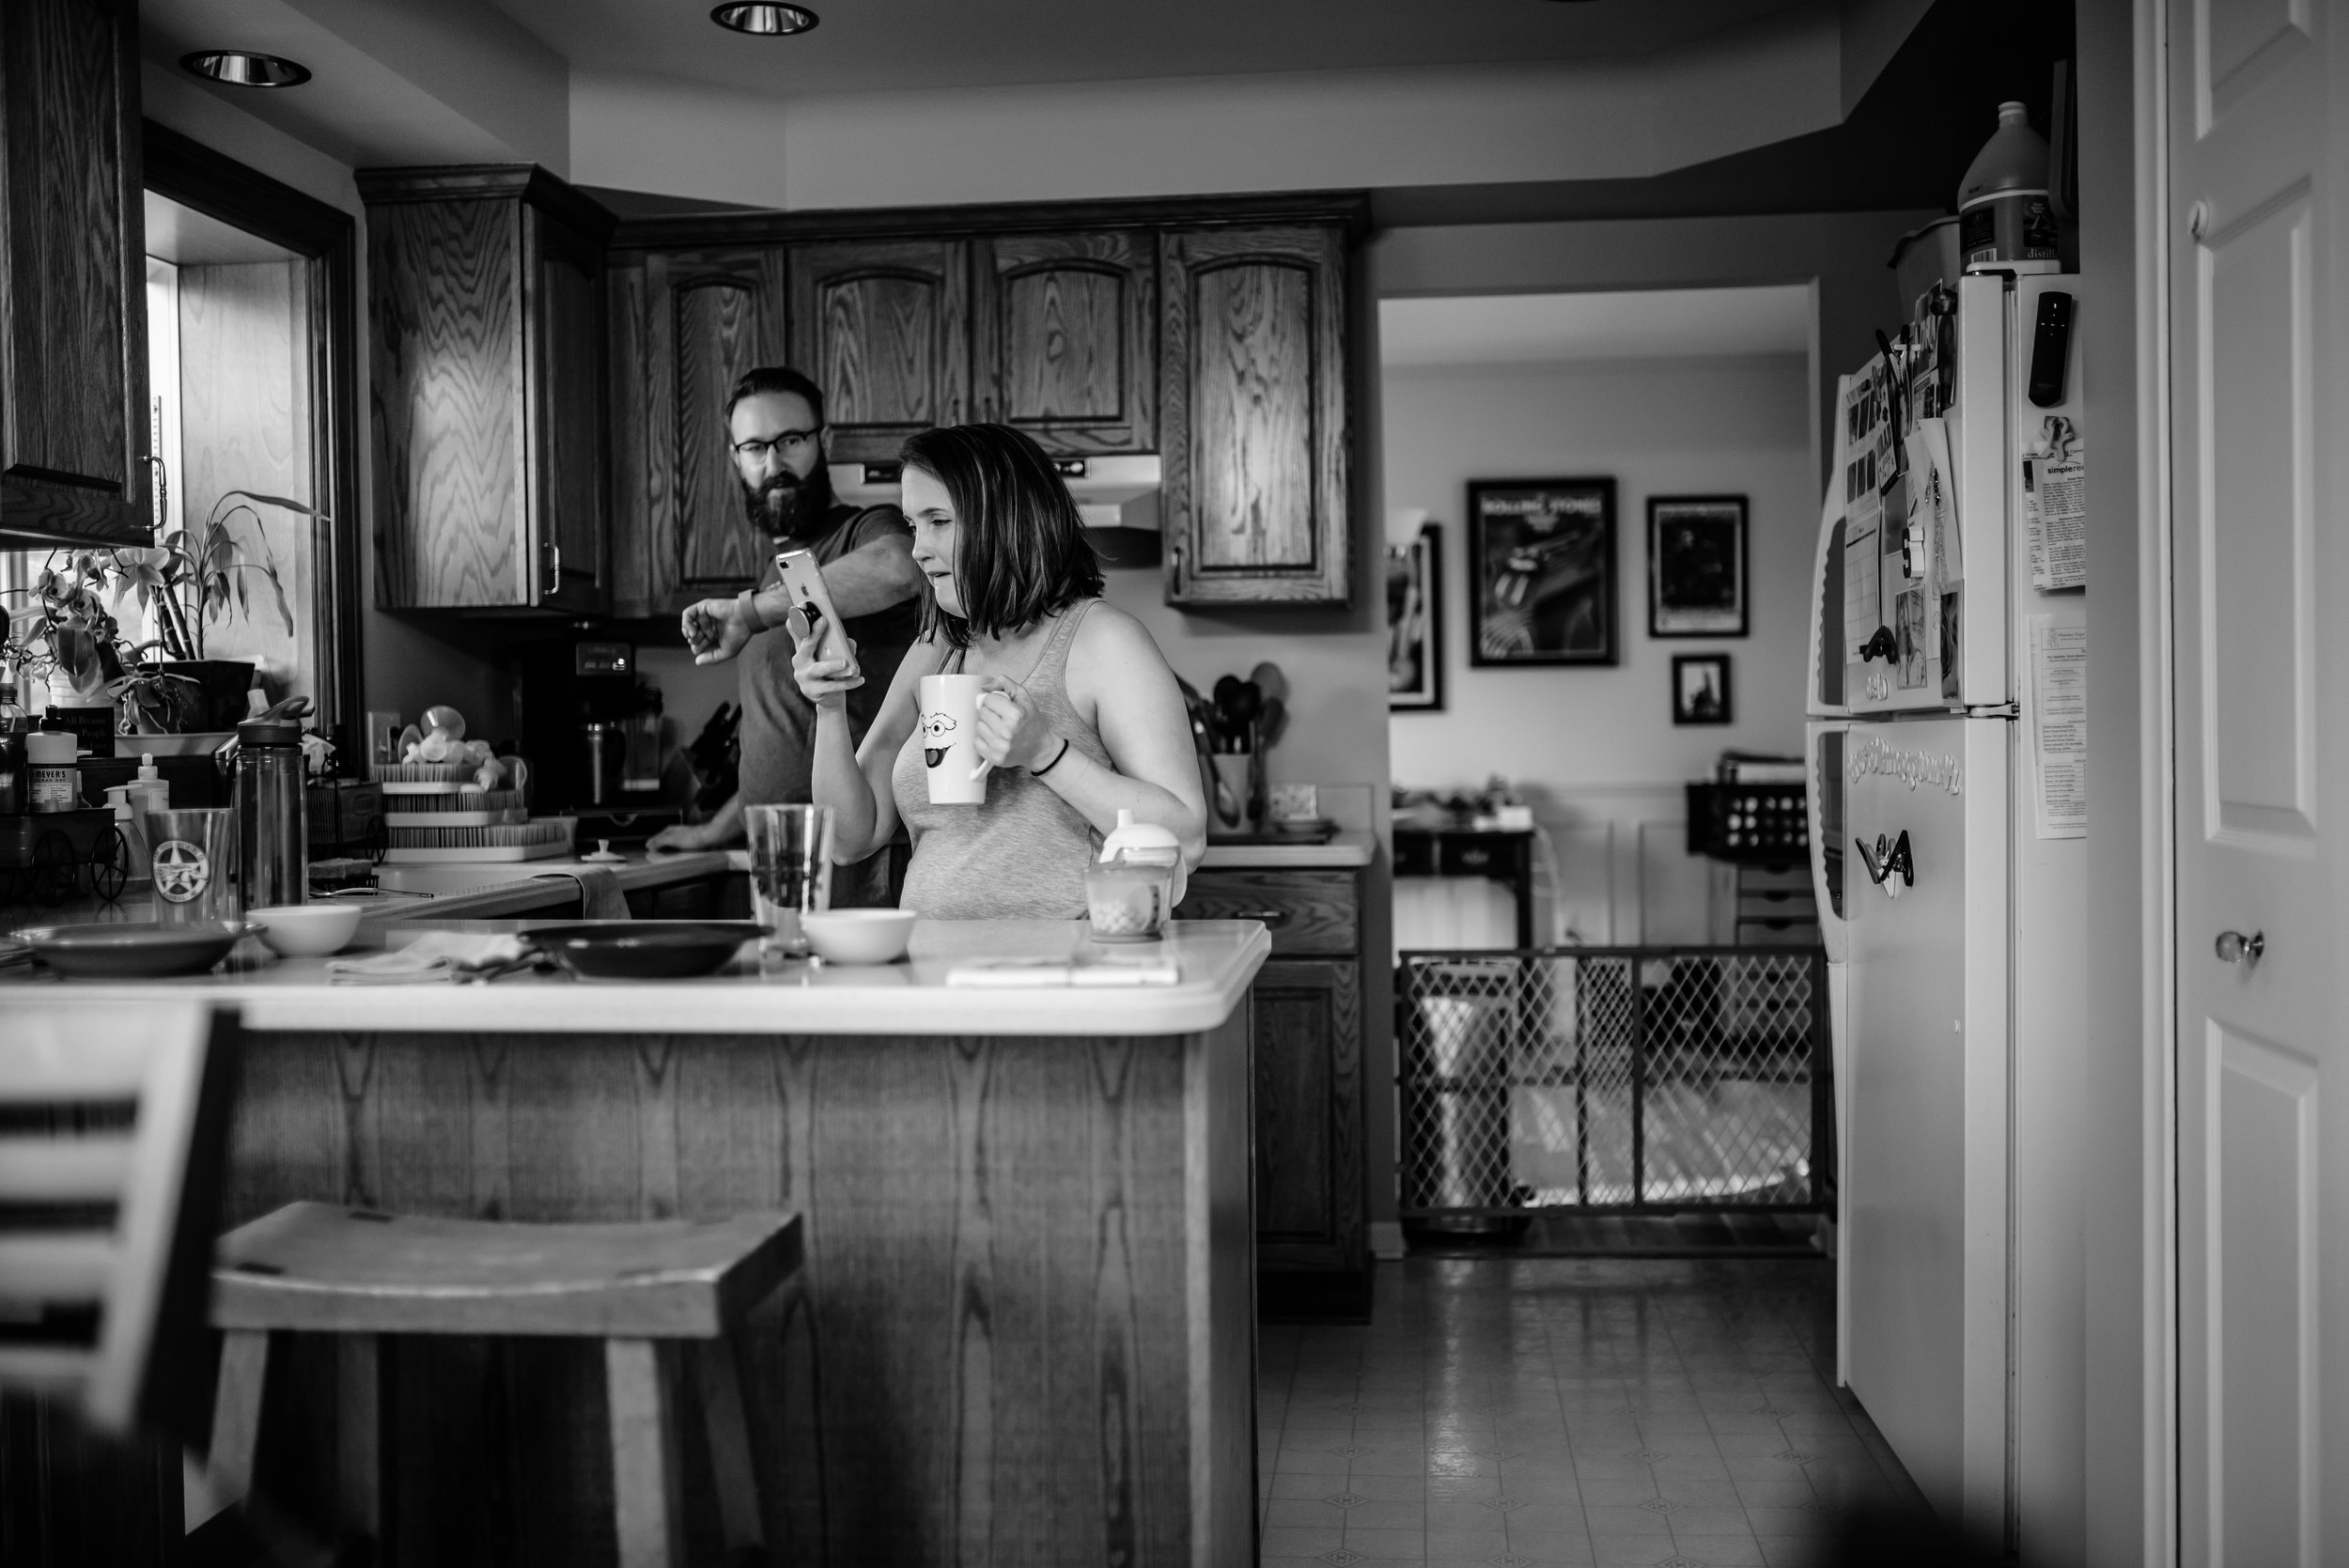 Mom and Dad in kitchen drinking coffee looking at phone and time